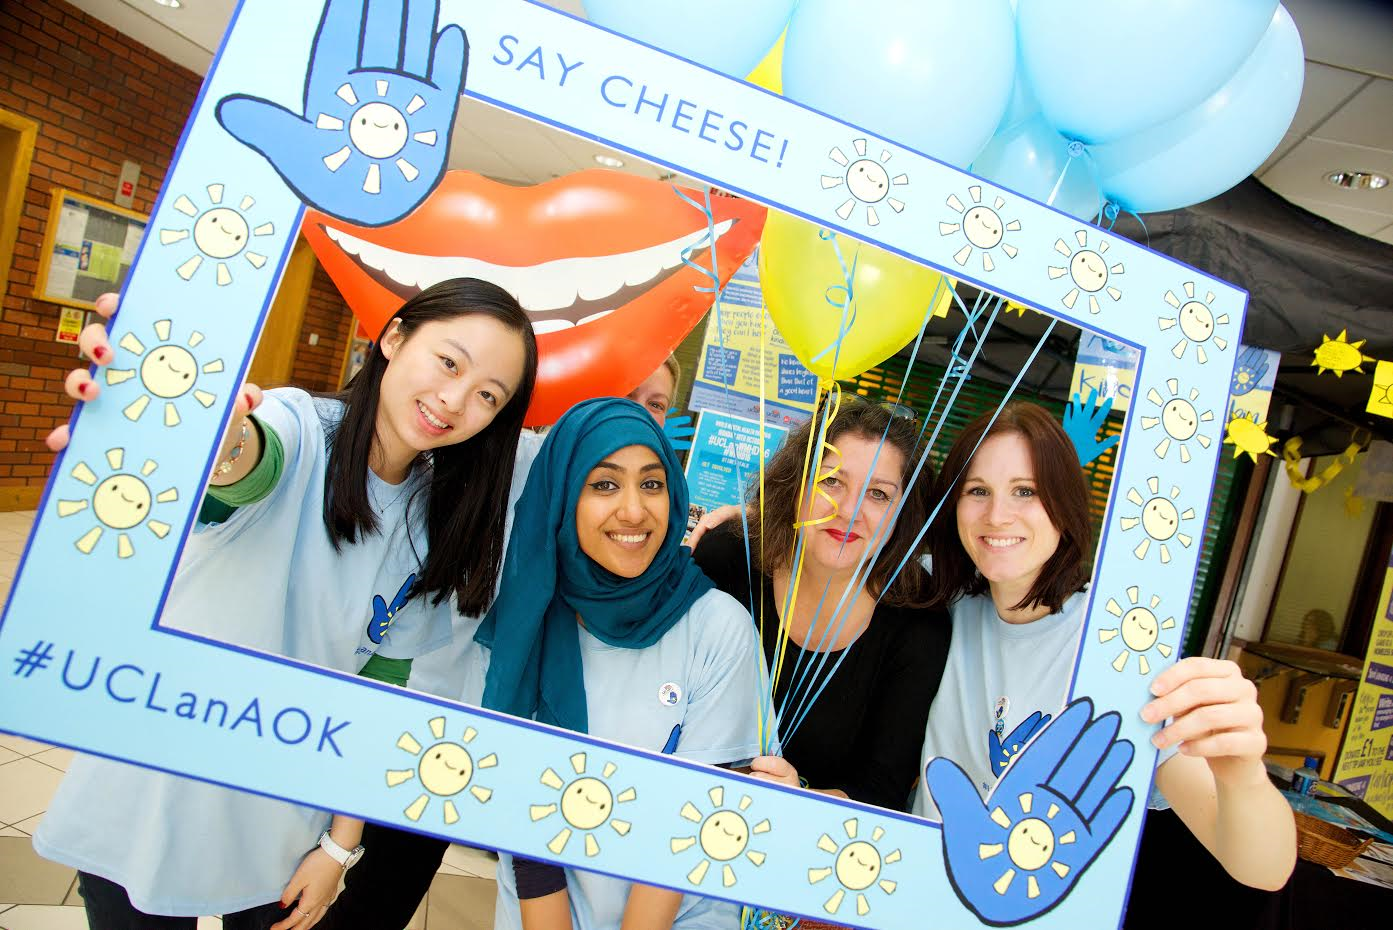 UCLan Acts of Kindness Day